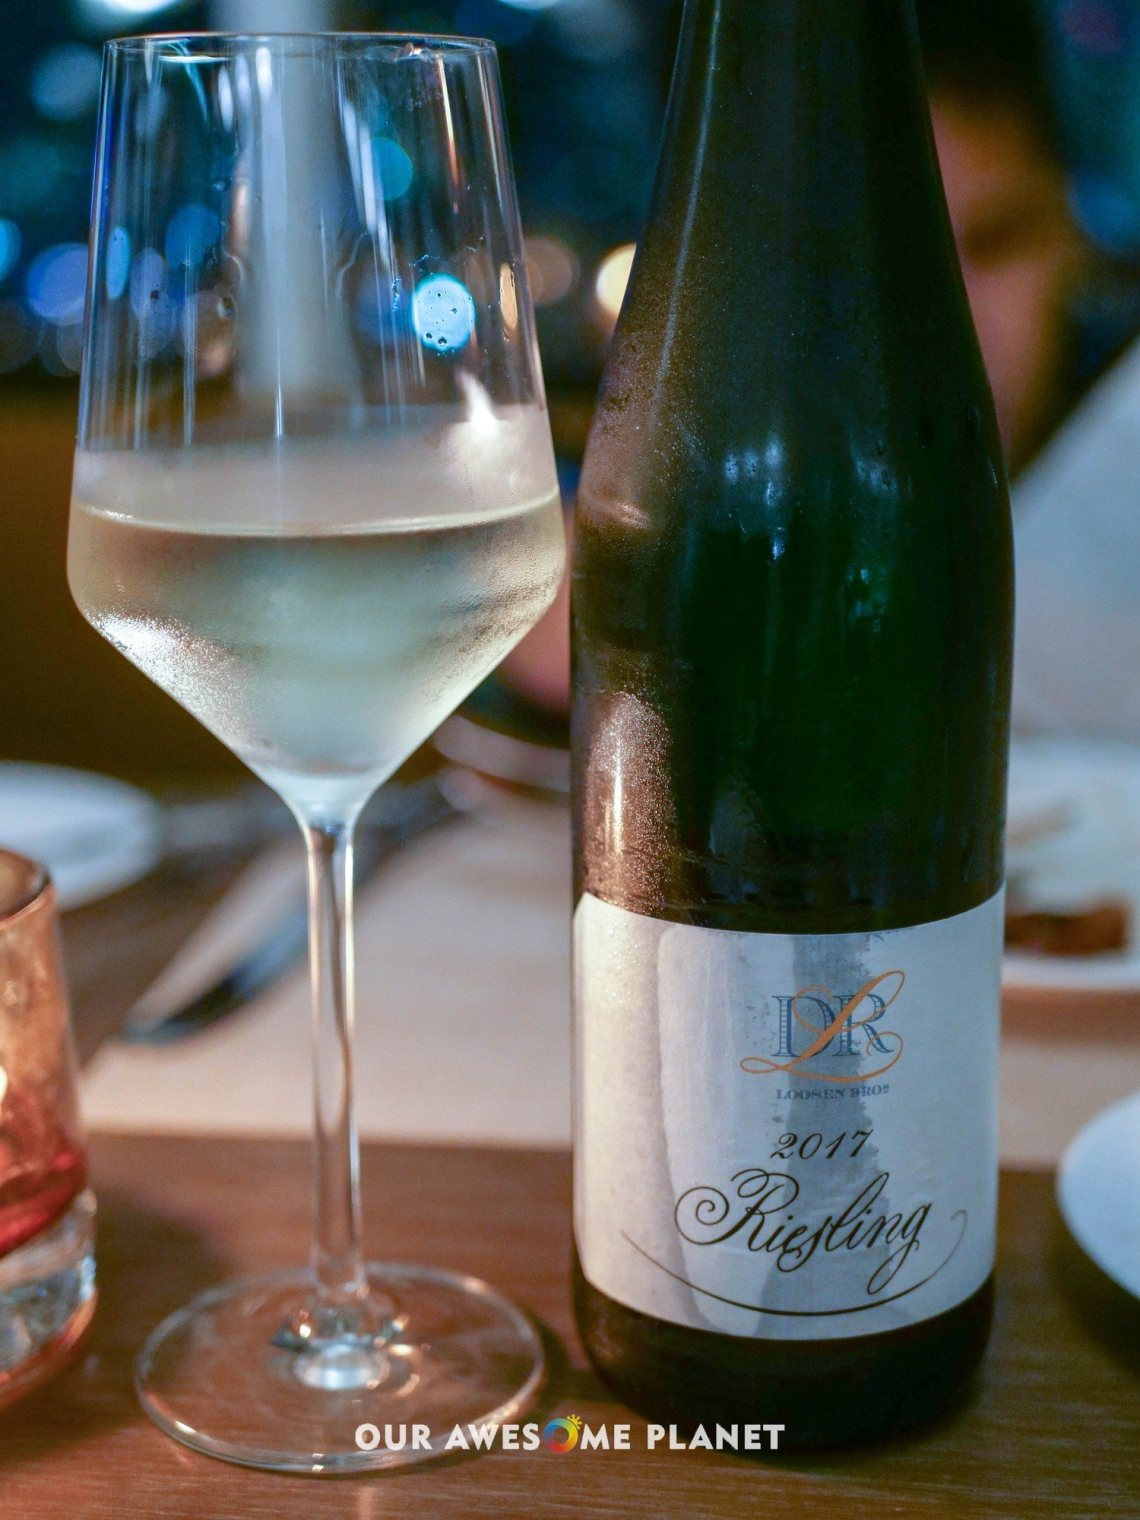 Dr. L Riesling (Glass - ₱475, Bottle - ₱1,850)